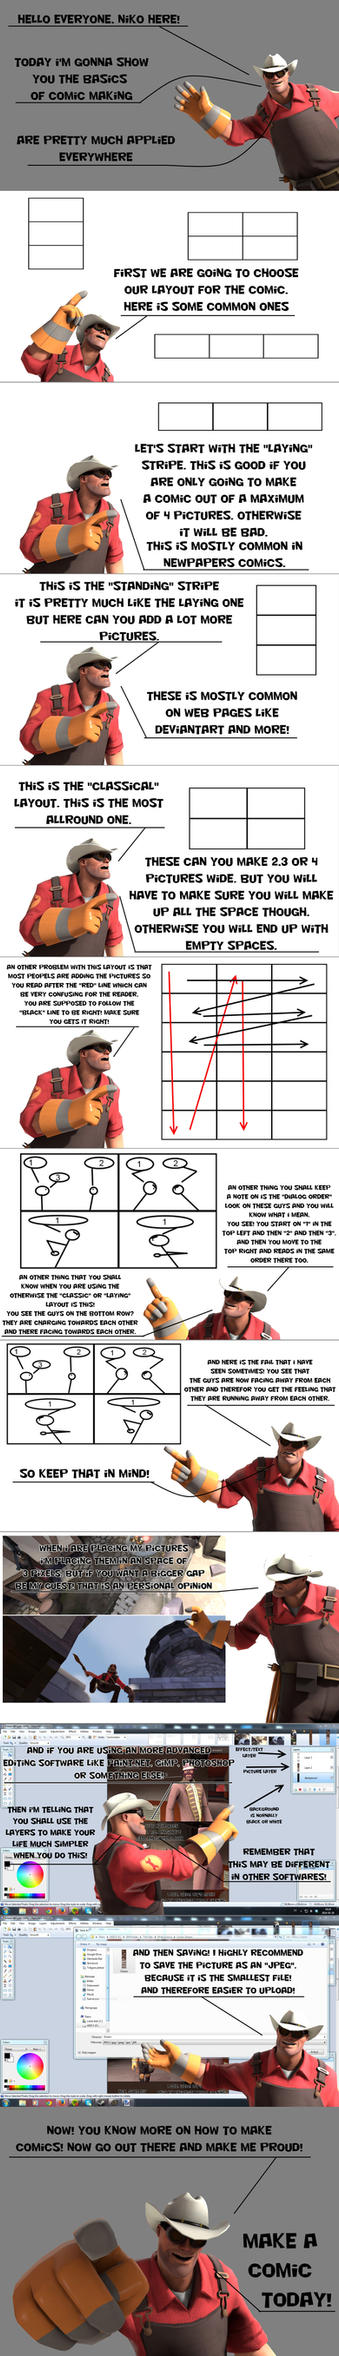 Niko's how to make a Comic by Nikolad92